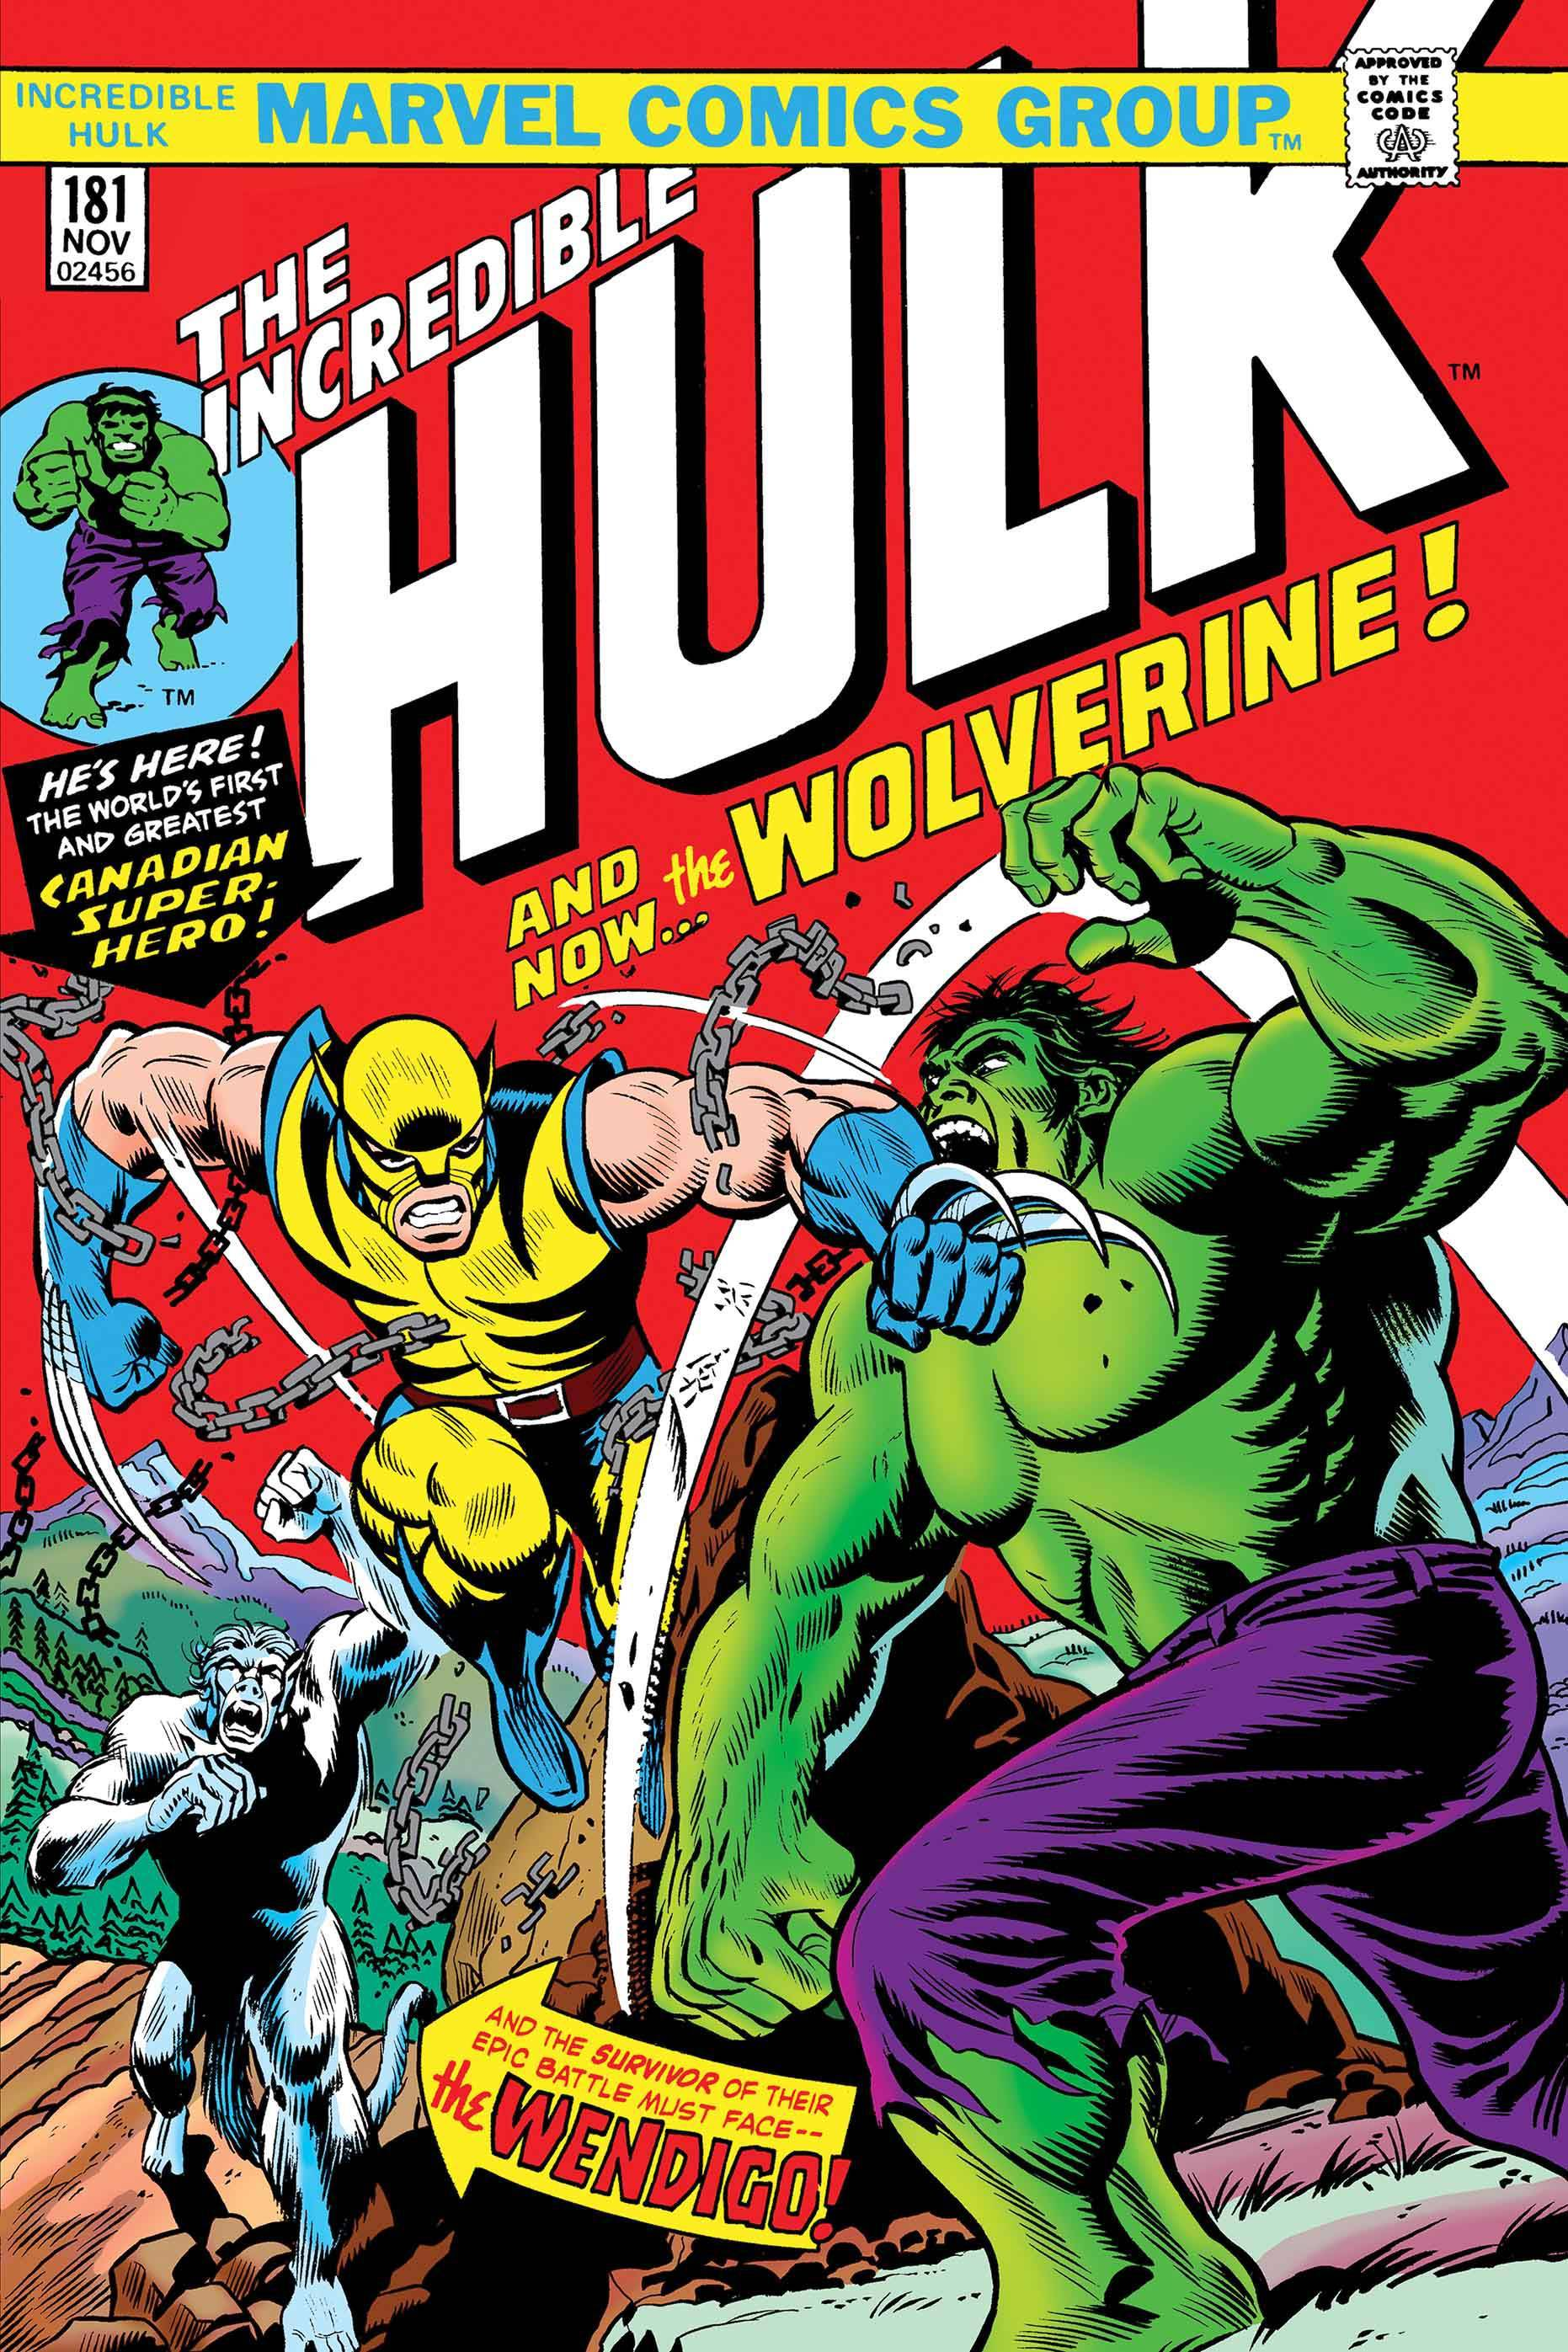 INCREDIBLE HULK #181 FACSIMILE EDITION NEW PTG.jpg